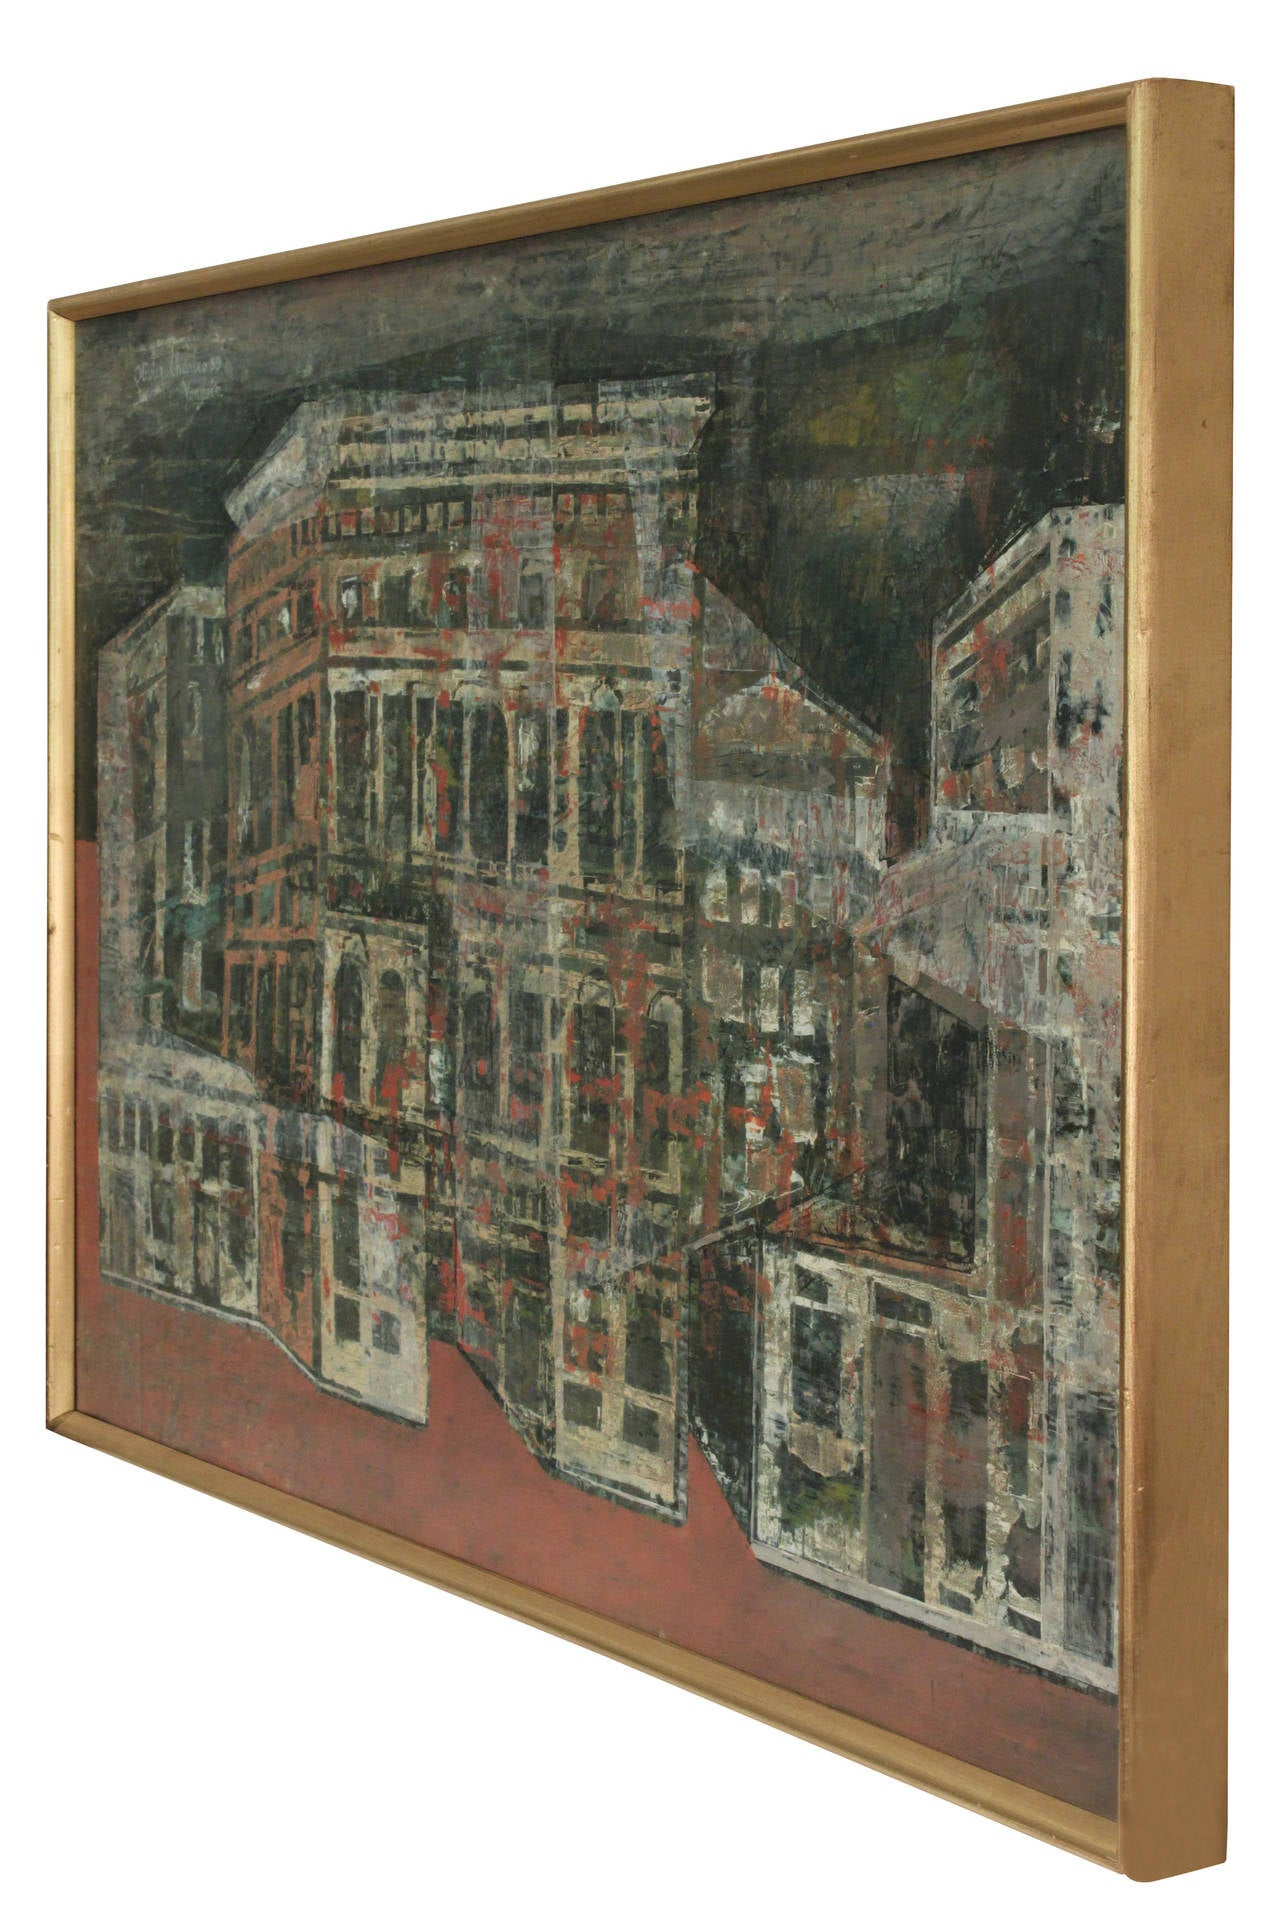 Abstract Venetian cityscape painting by Olivier Charles, Venice, 1959. (Signed